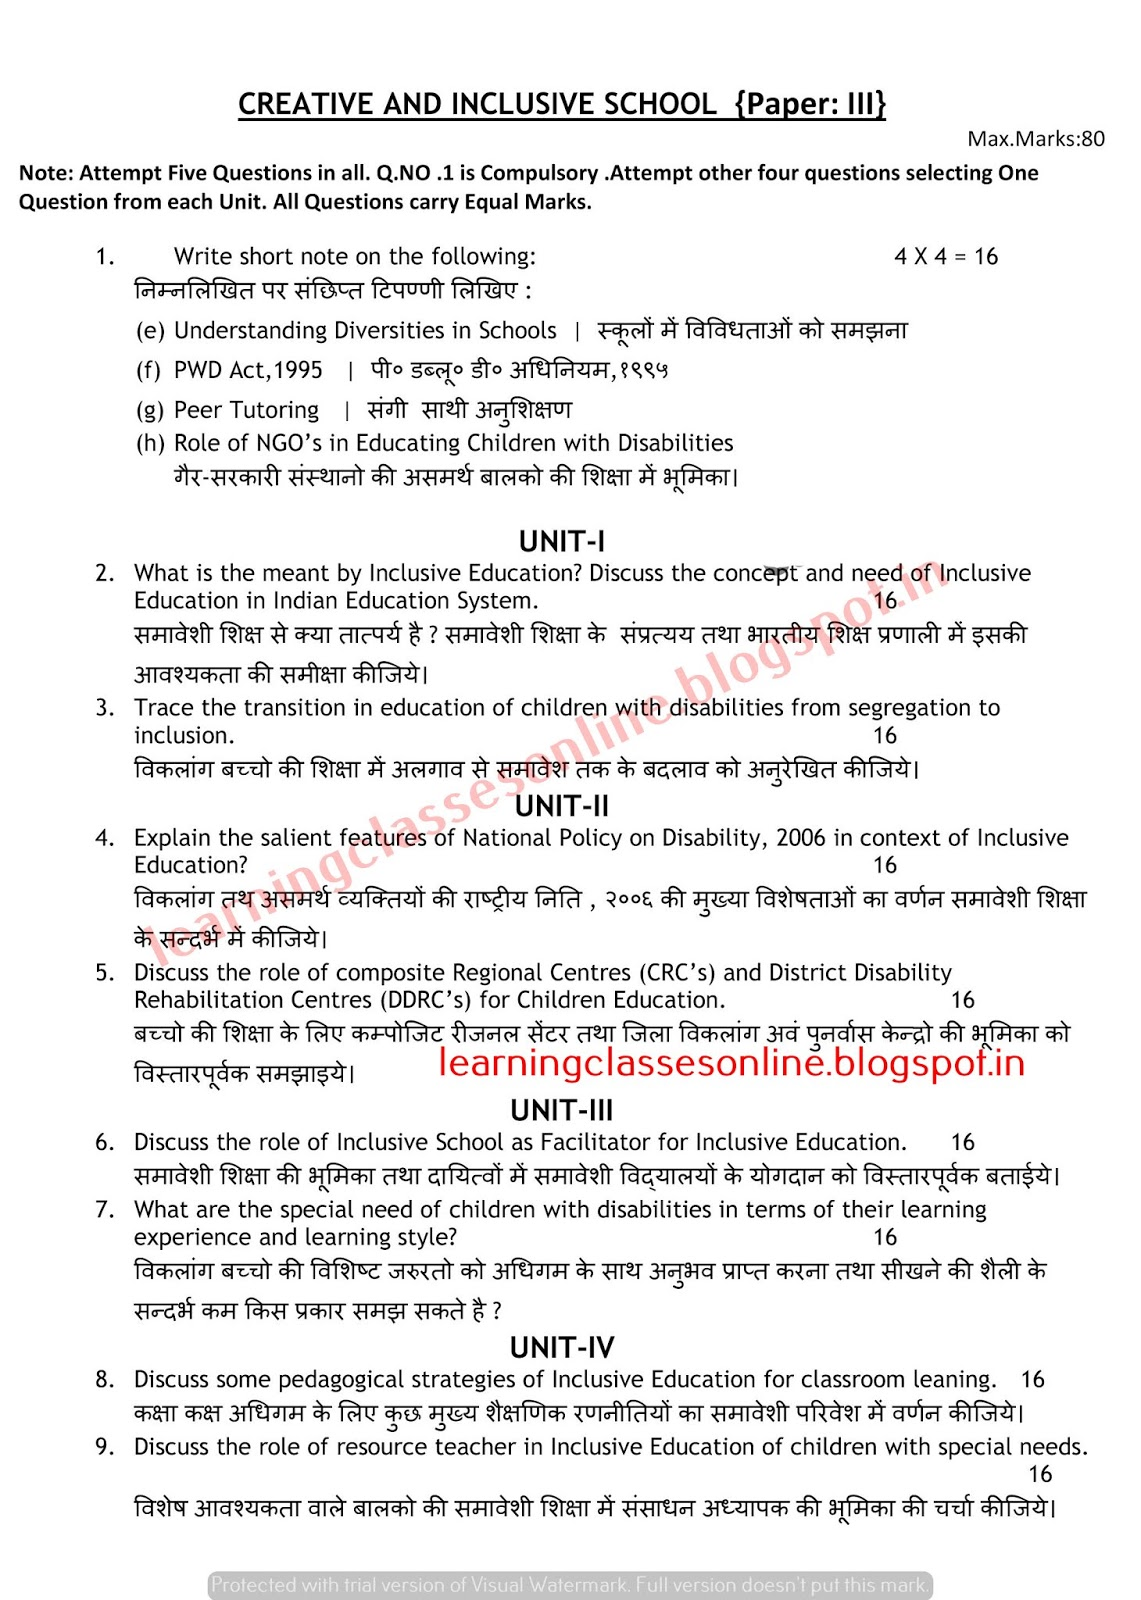 creating an  inclusive school  Second Year  2017 B.Ed question Paper